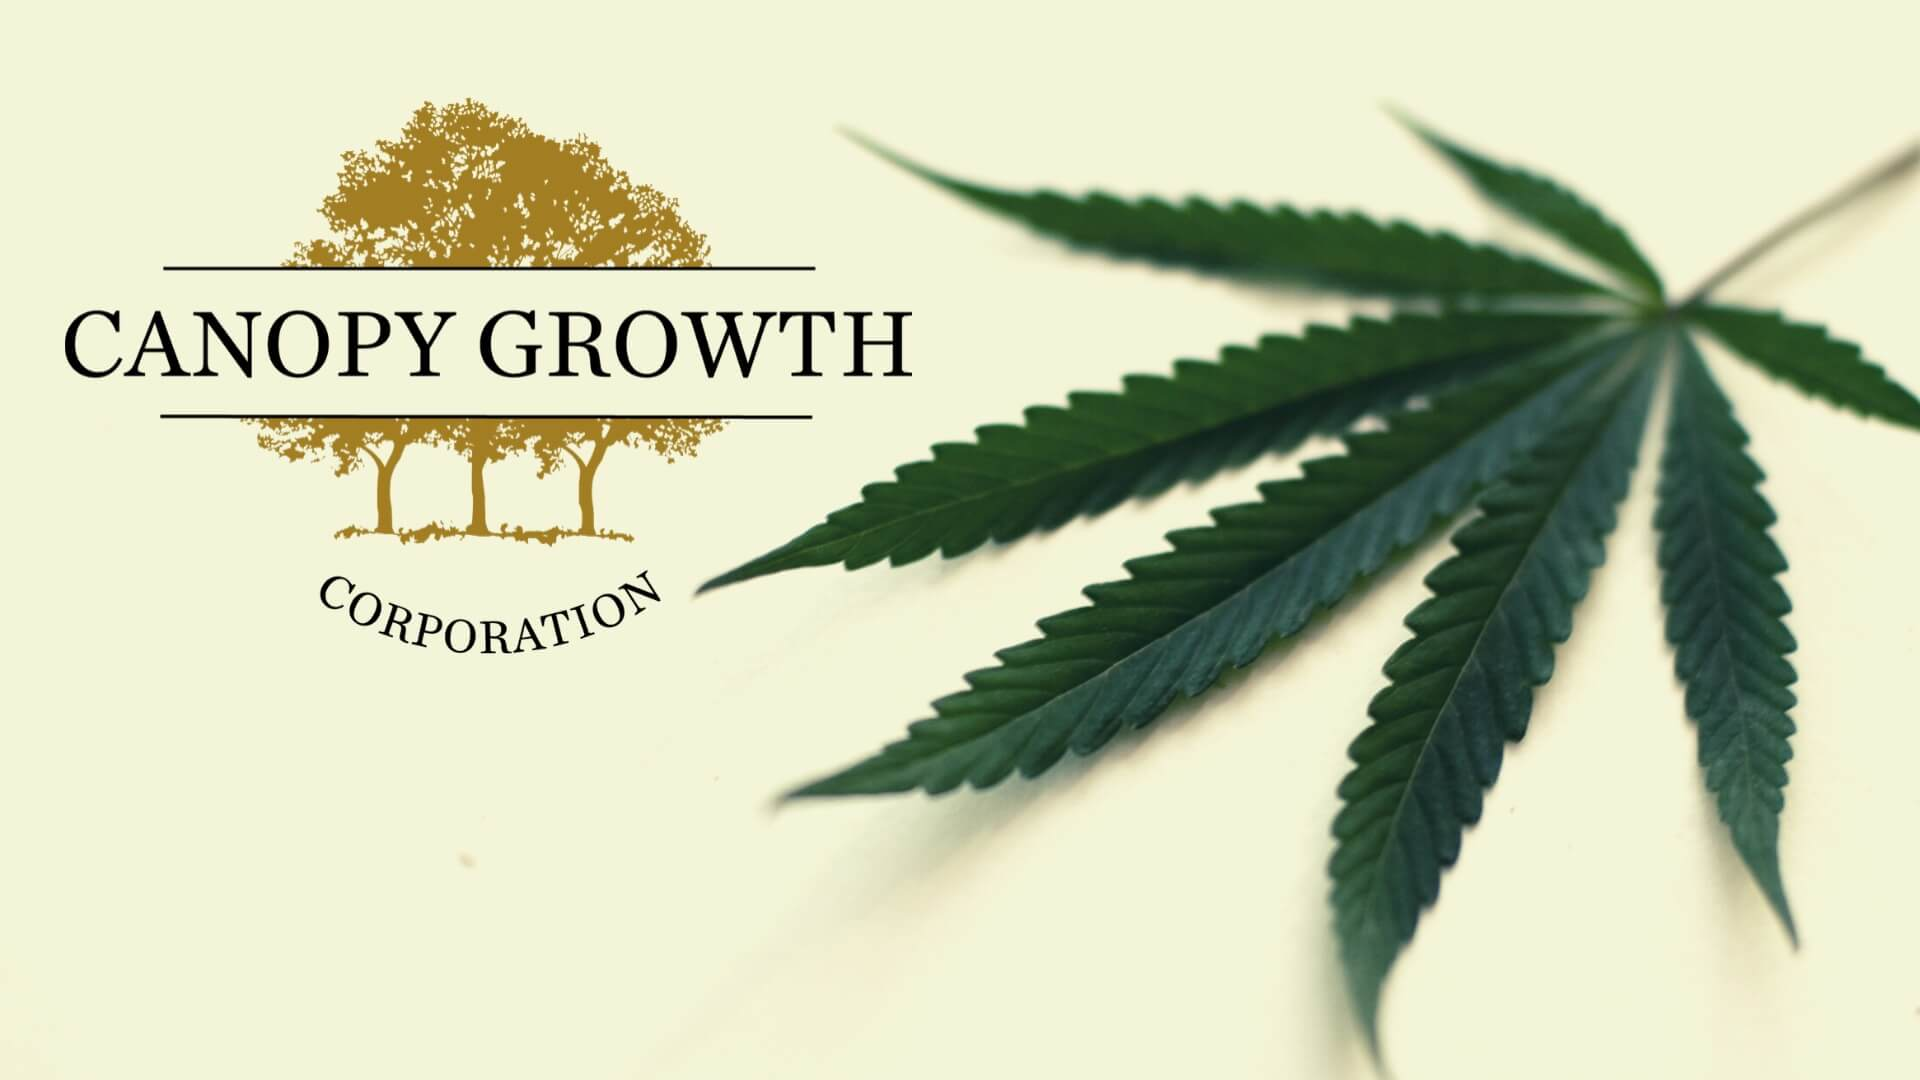 Canopy Growth Corporation begun producing cannabis-infused beverages